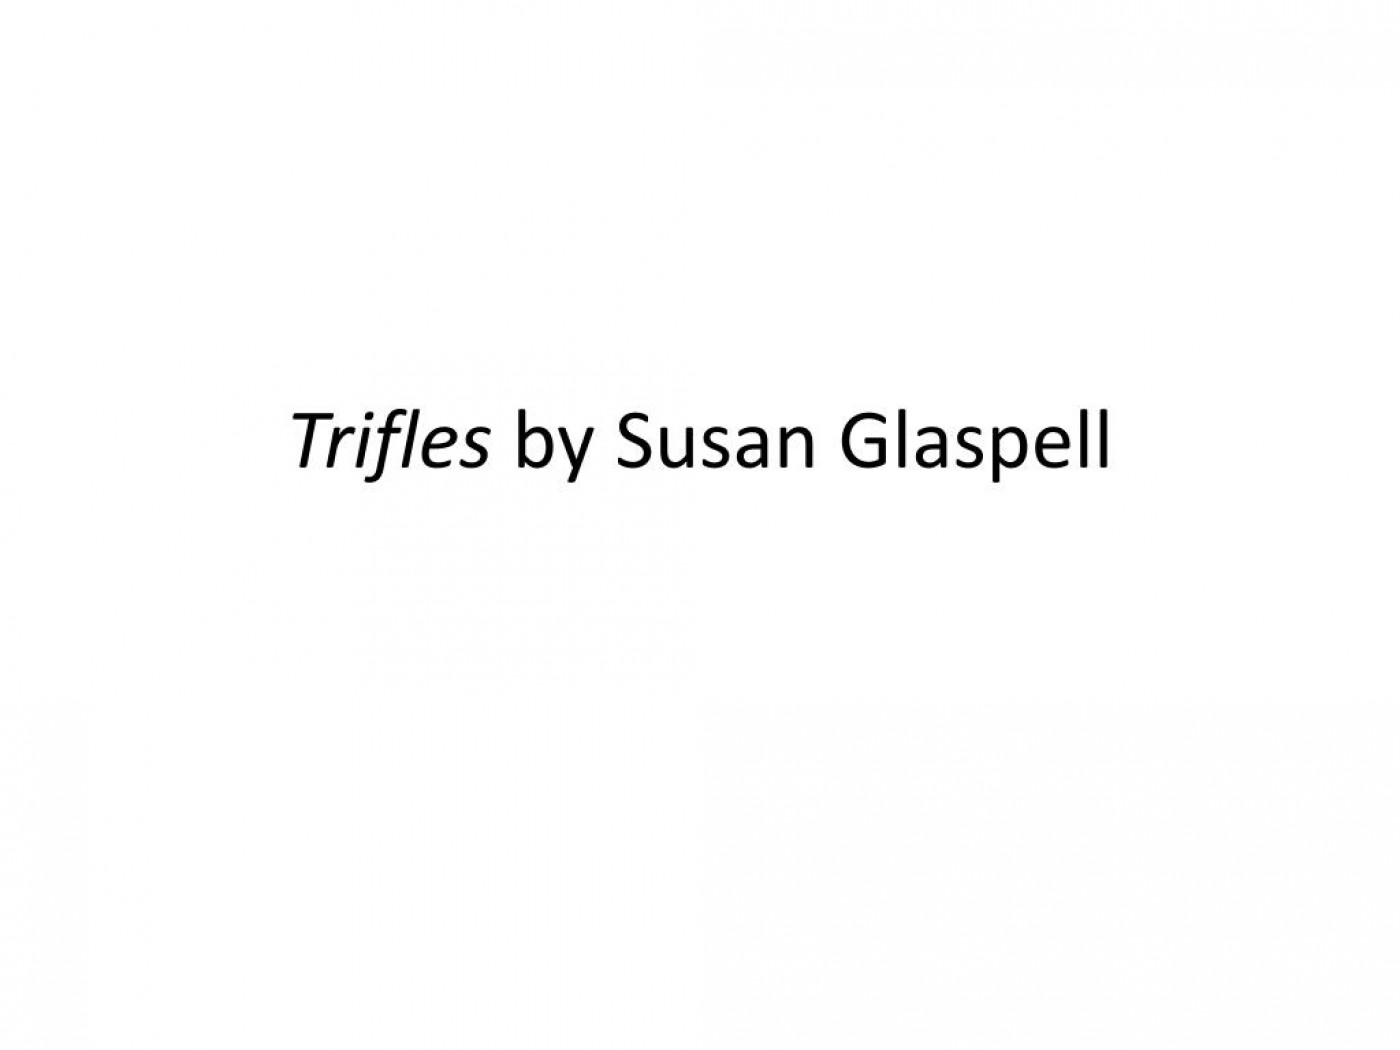 015 Trifles By Susan Glaspell L Essay Formidable Questions Feminism Topics 1400